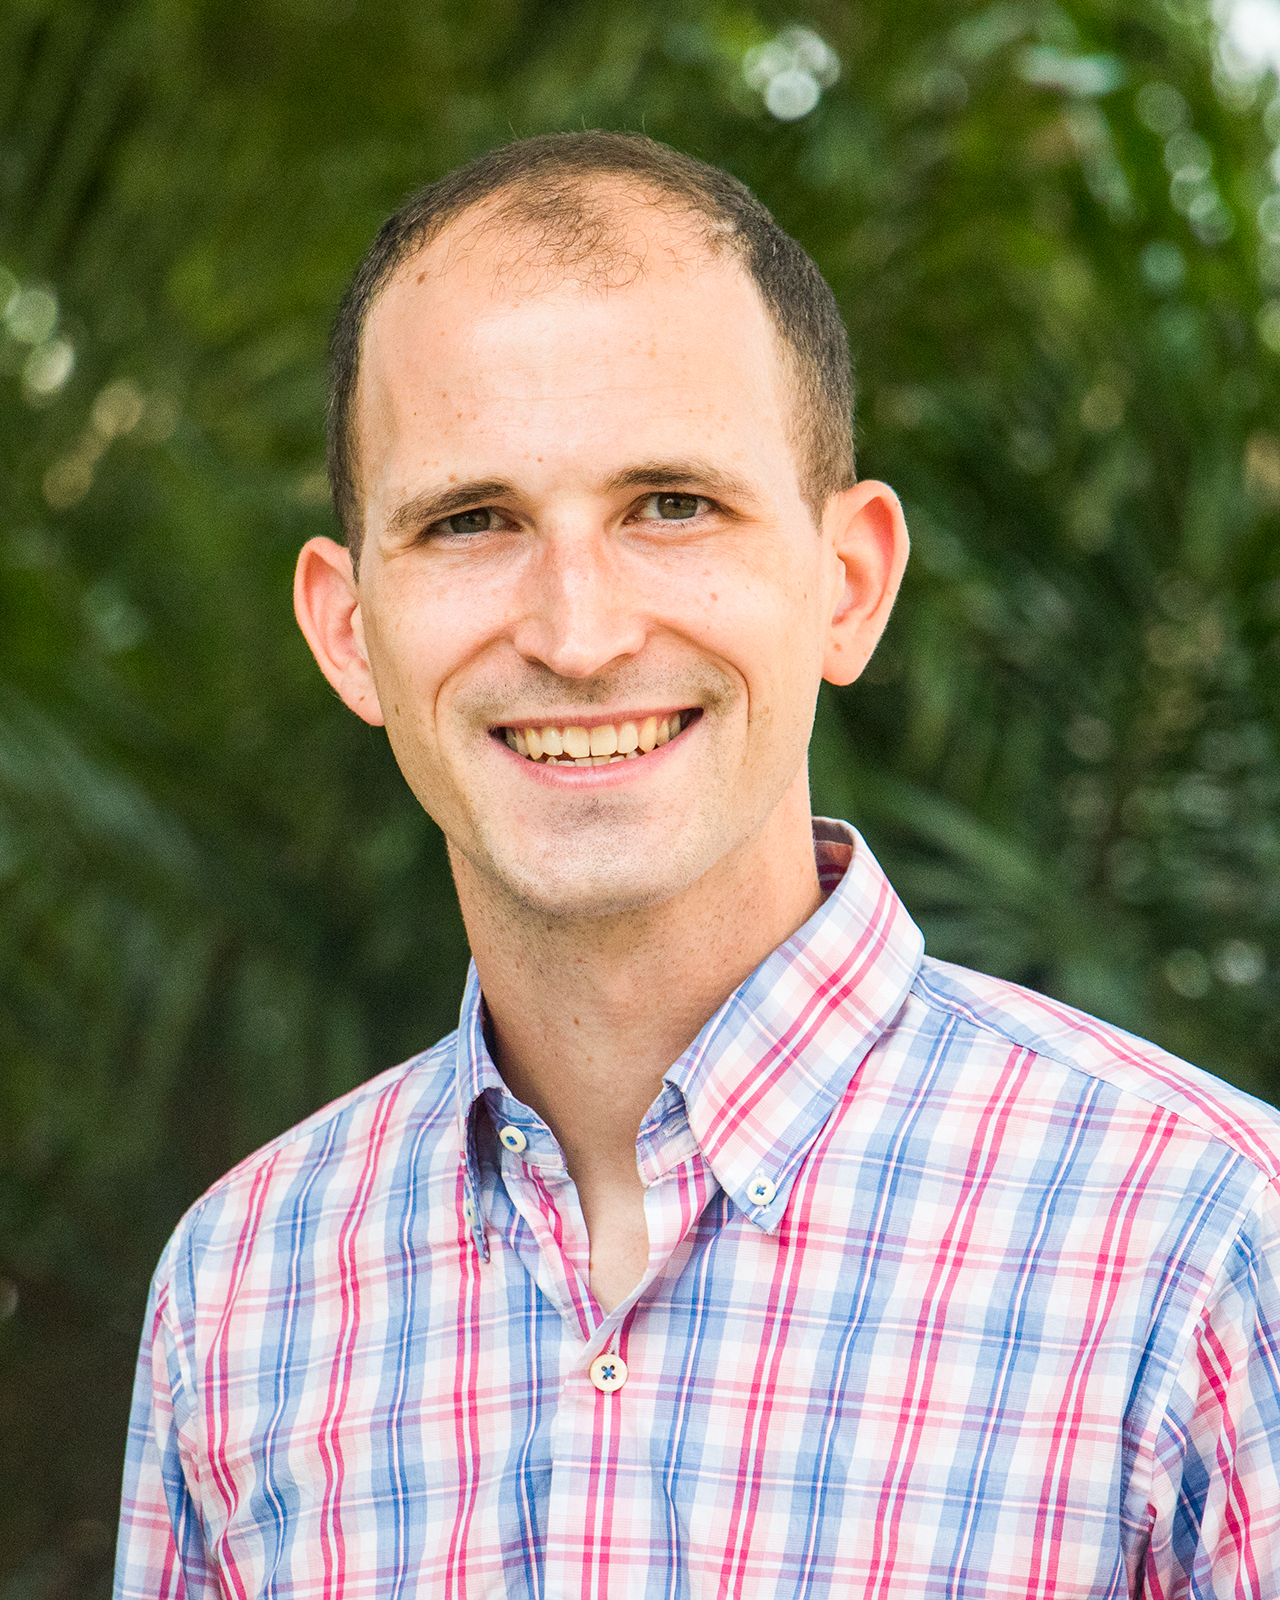 UCF Physicist Selected for $750,000 Early Career Energy Grant